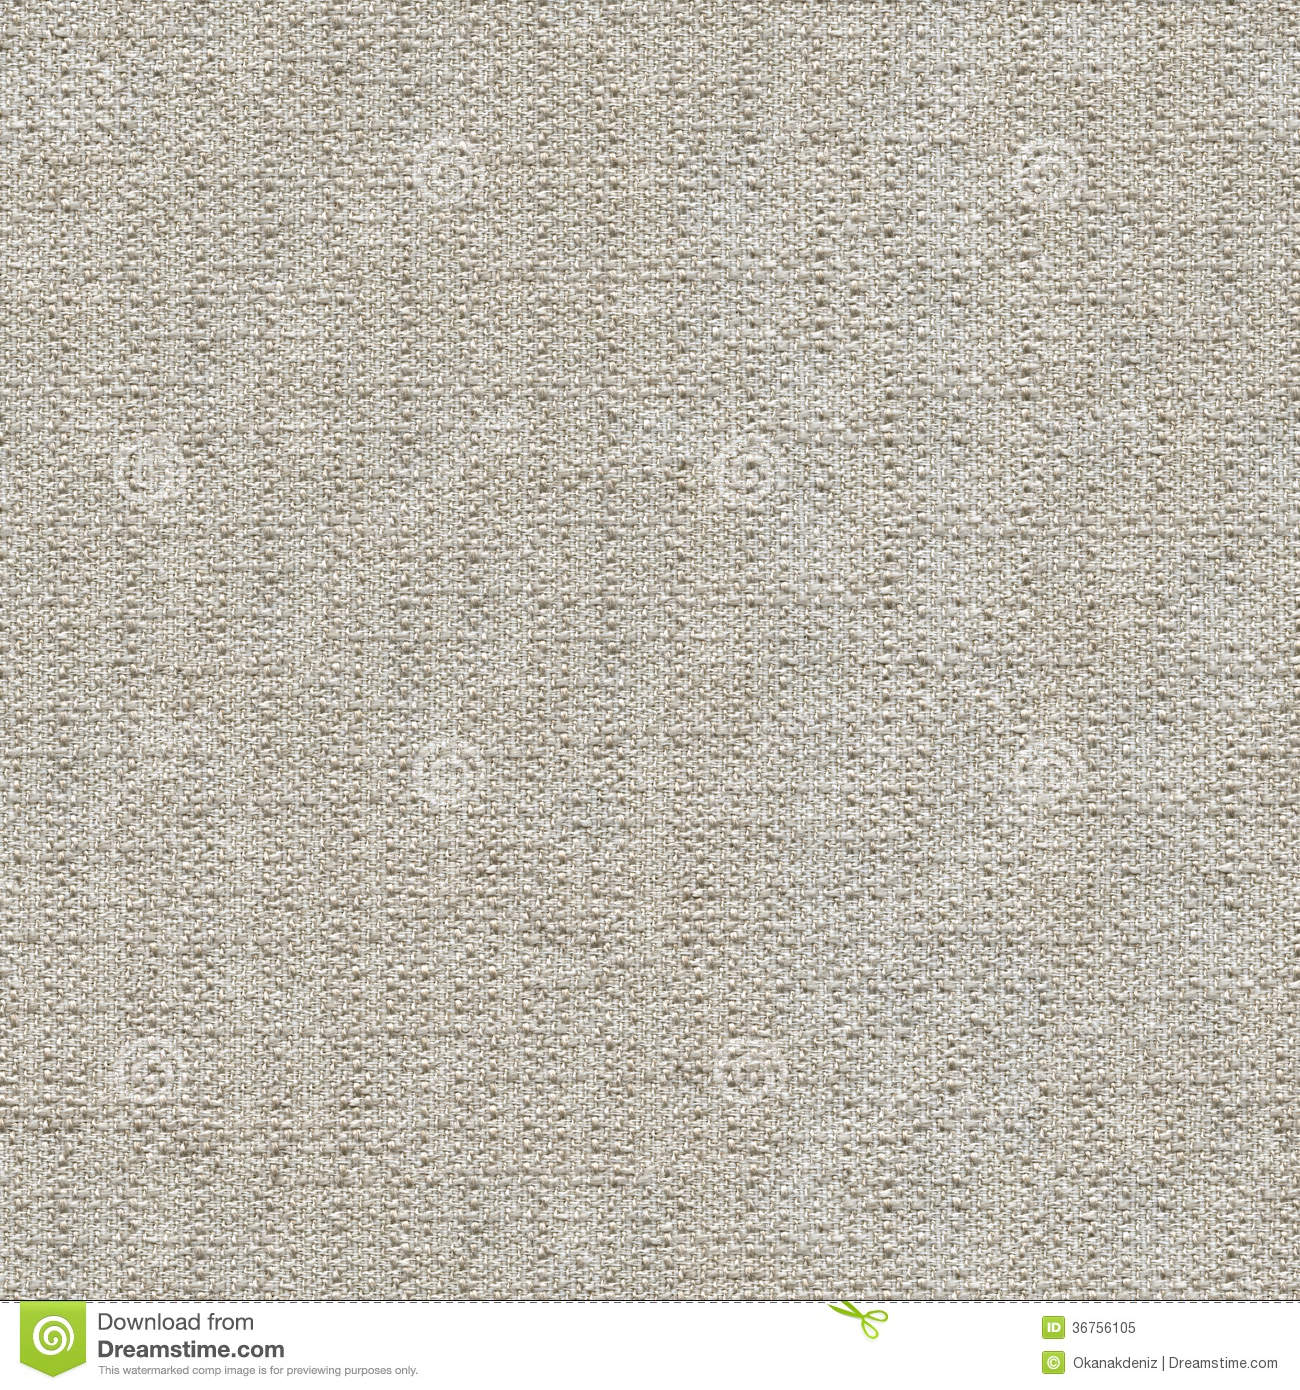 fabric texture seamless and tileable stock image image of design